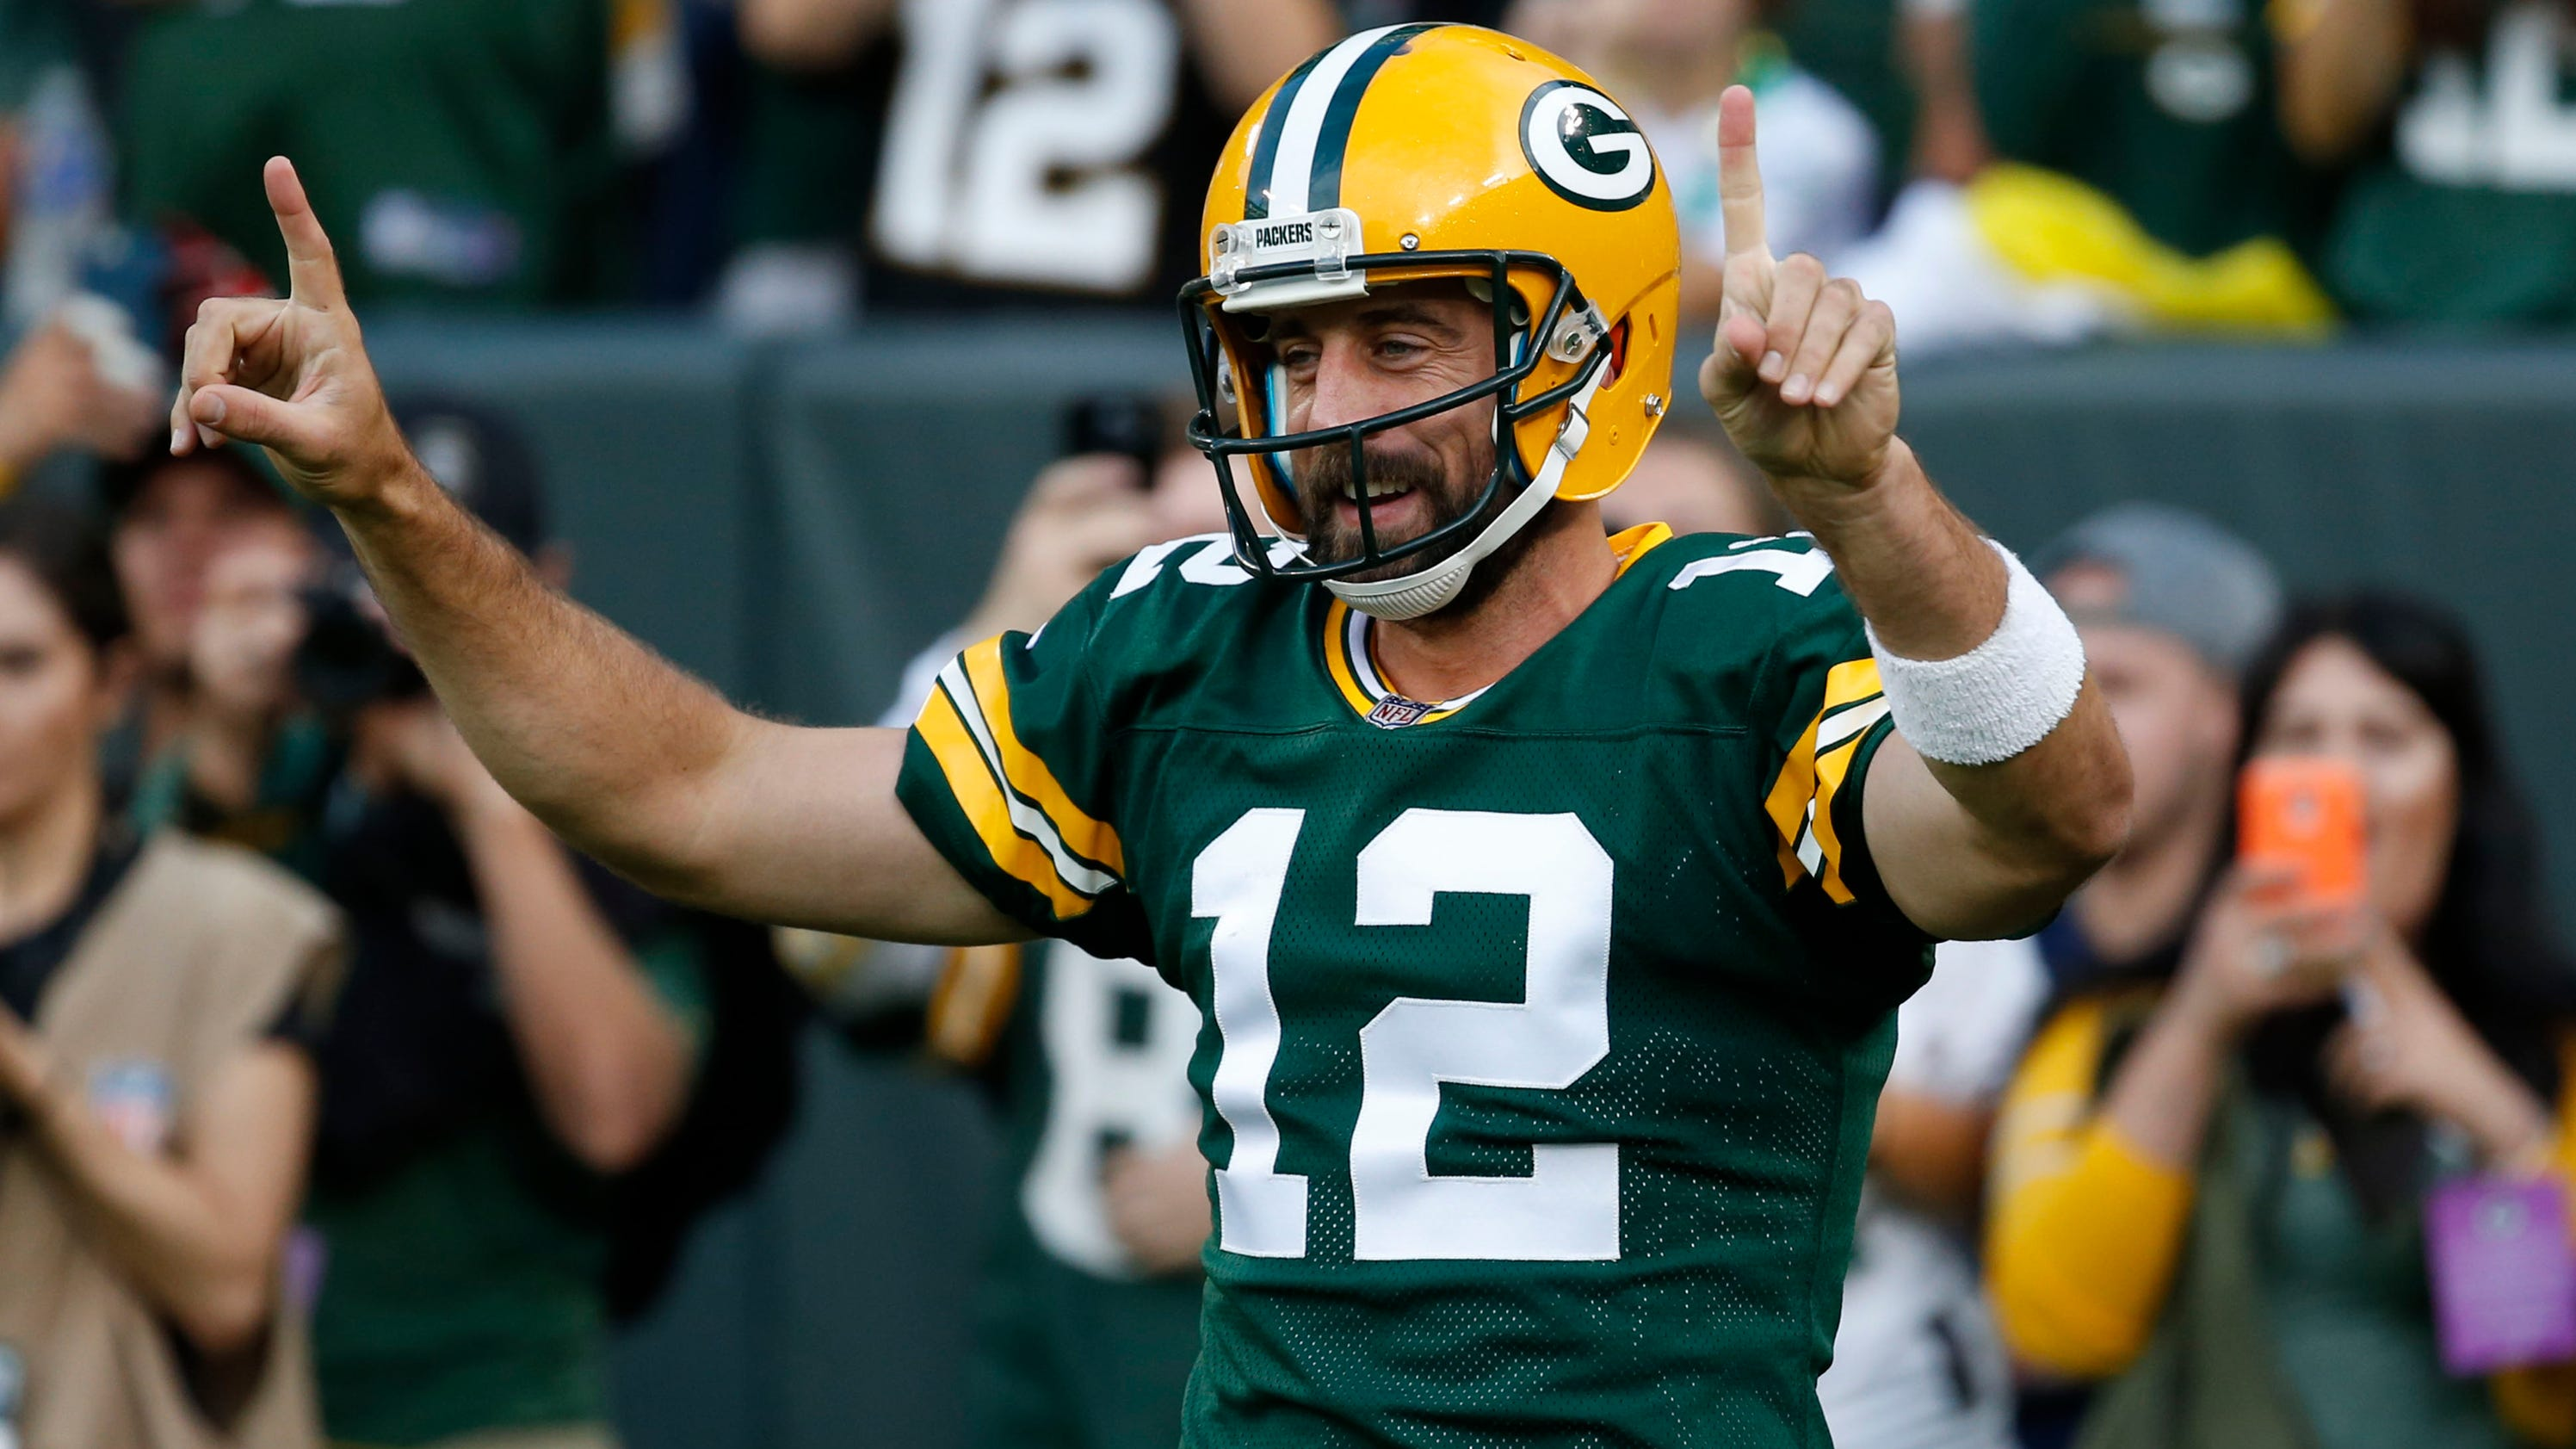 Aaron Rodgers shares favorite 'Game of Thrones' character